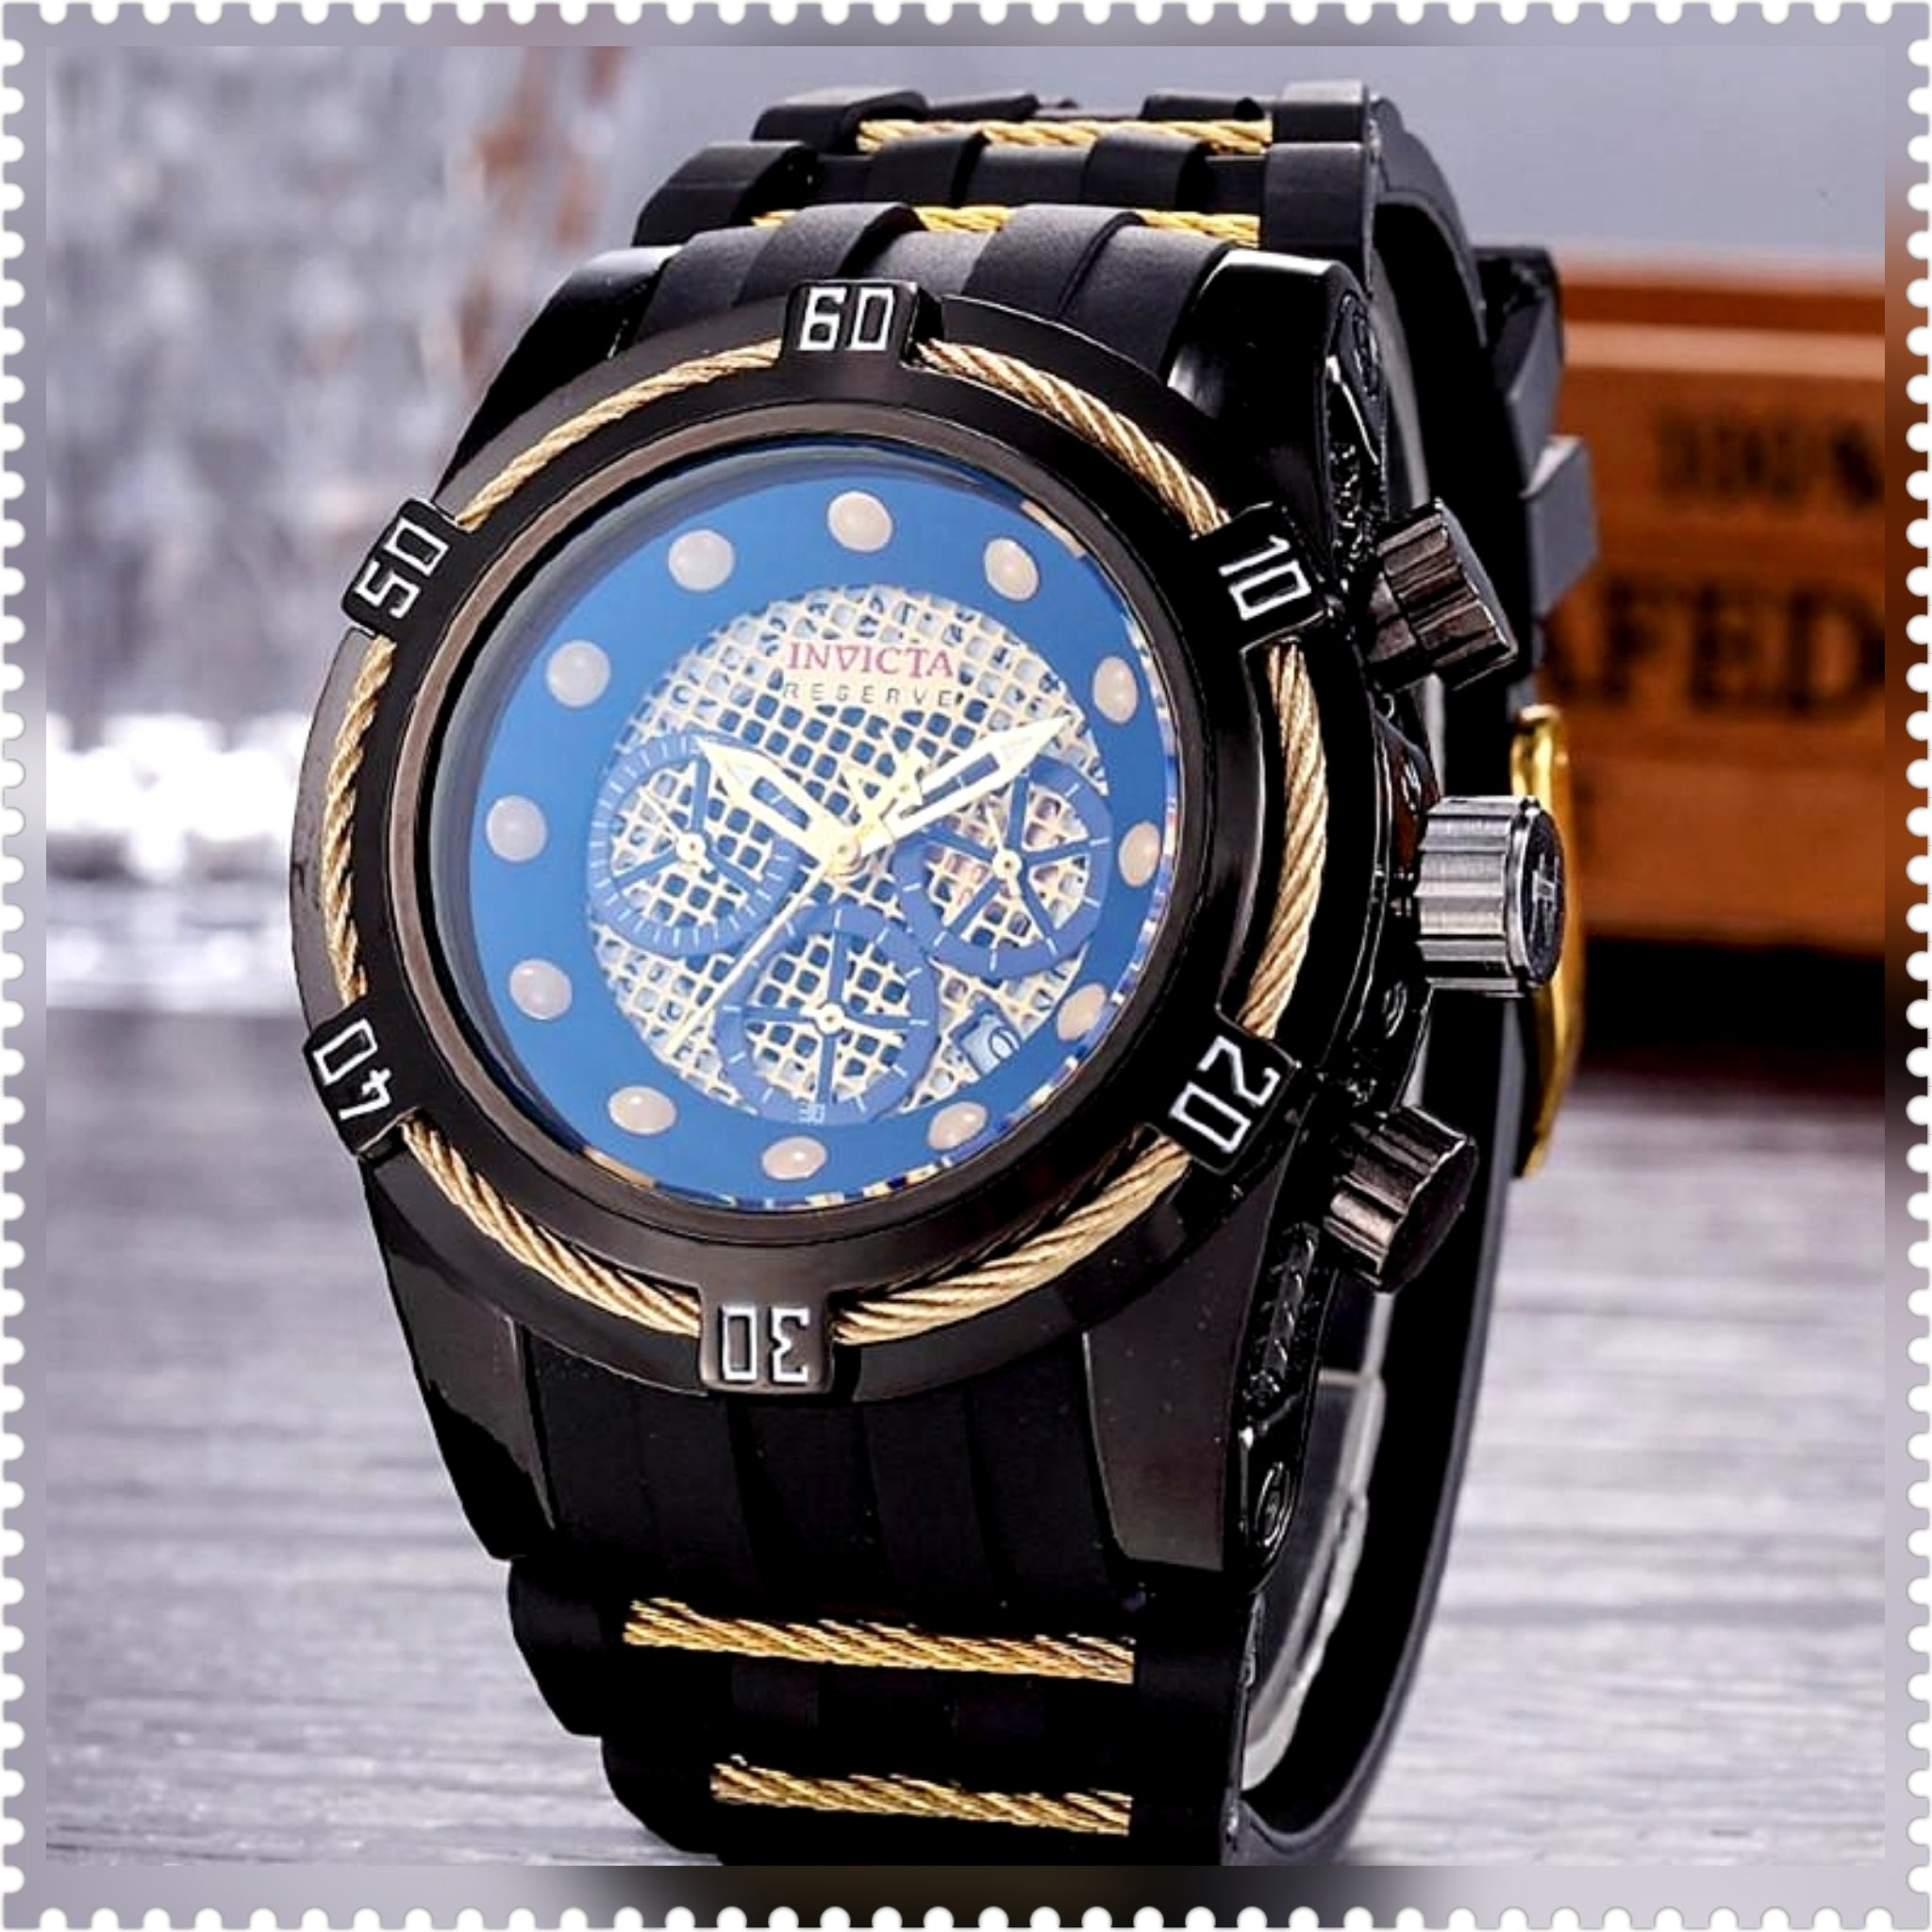 Invicta Reserve Gold Trim Stainless Steel Waterproof Mens Watch Ships Free - HW-WATCHEZ HWWATCHEZ.COM